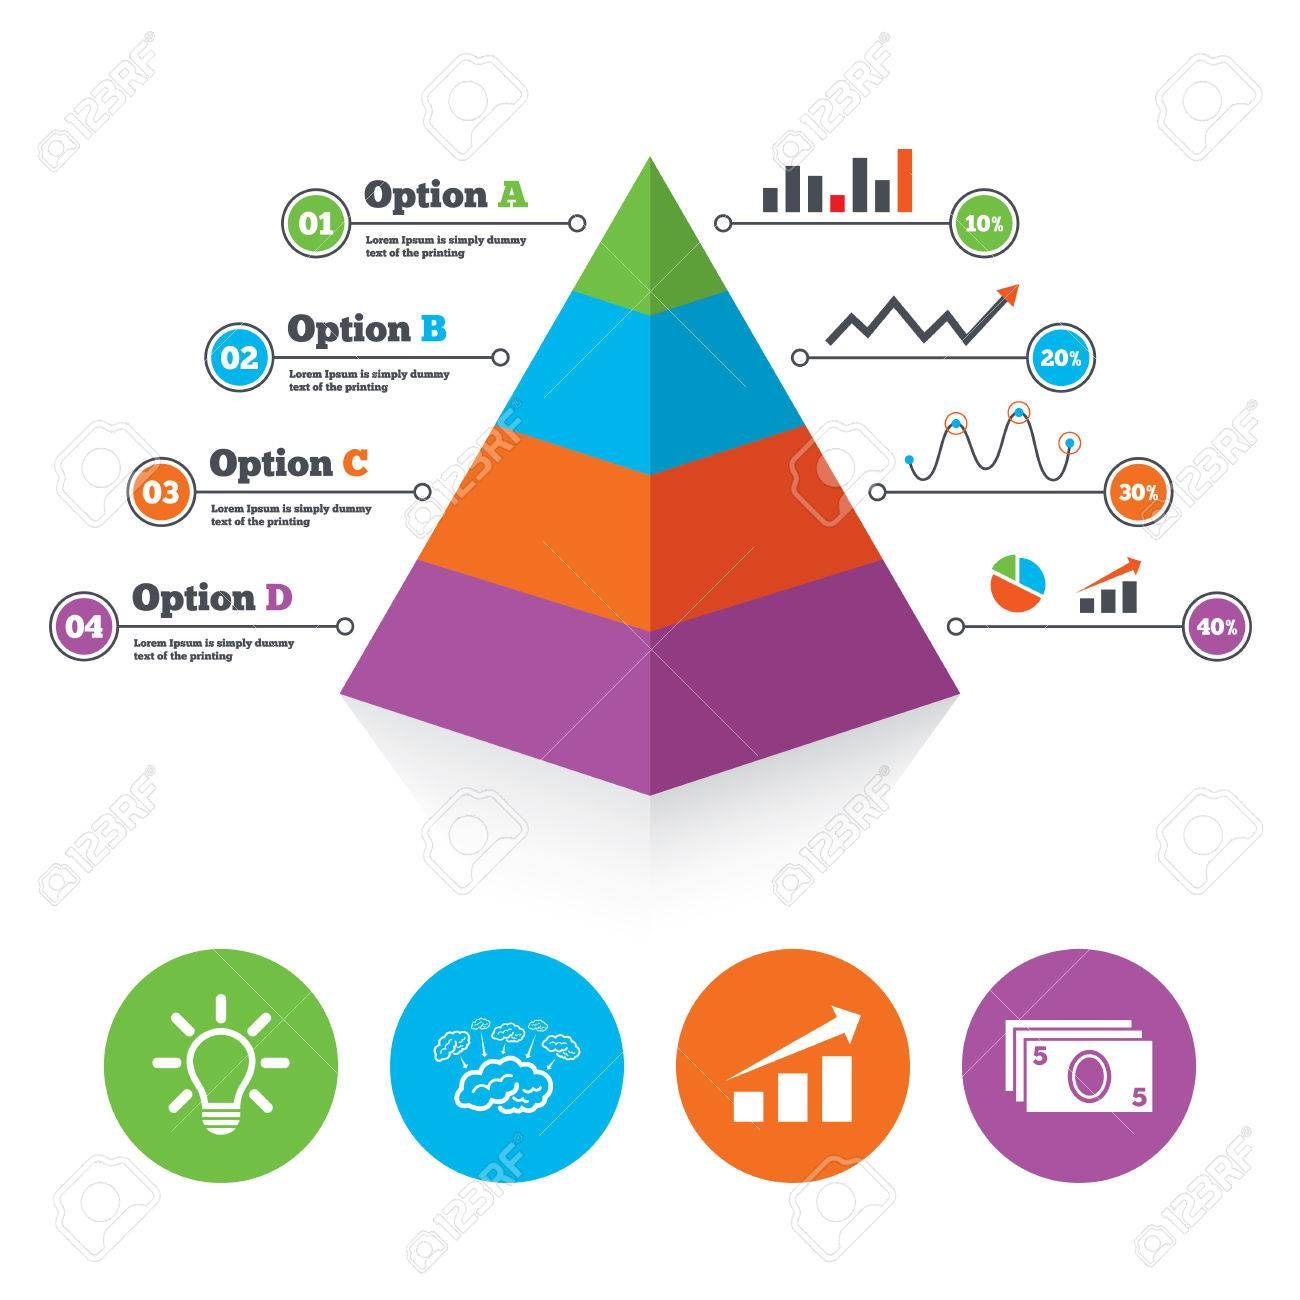 a pyramid scheme cliparts  stock vector and royalty free a pyramid    a pyramid scheme  pyramid chart template  chart   arrow  brainstorm icons  cash